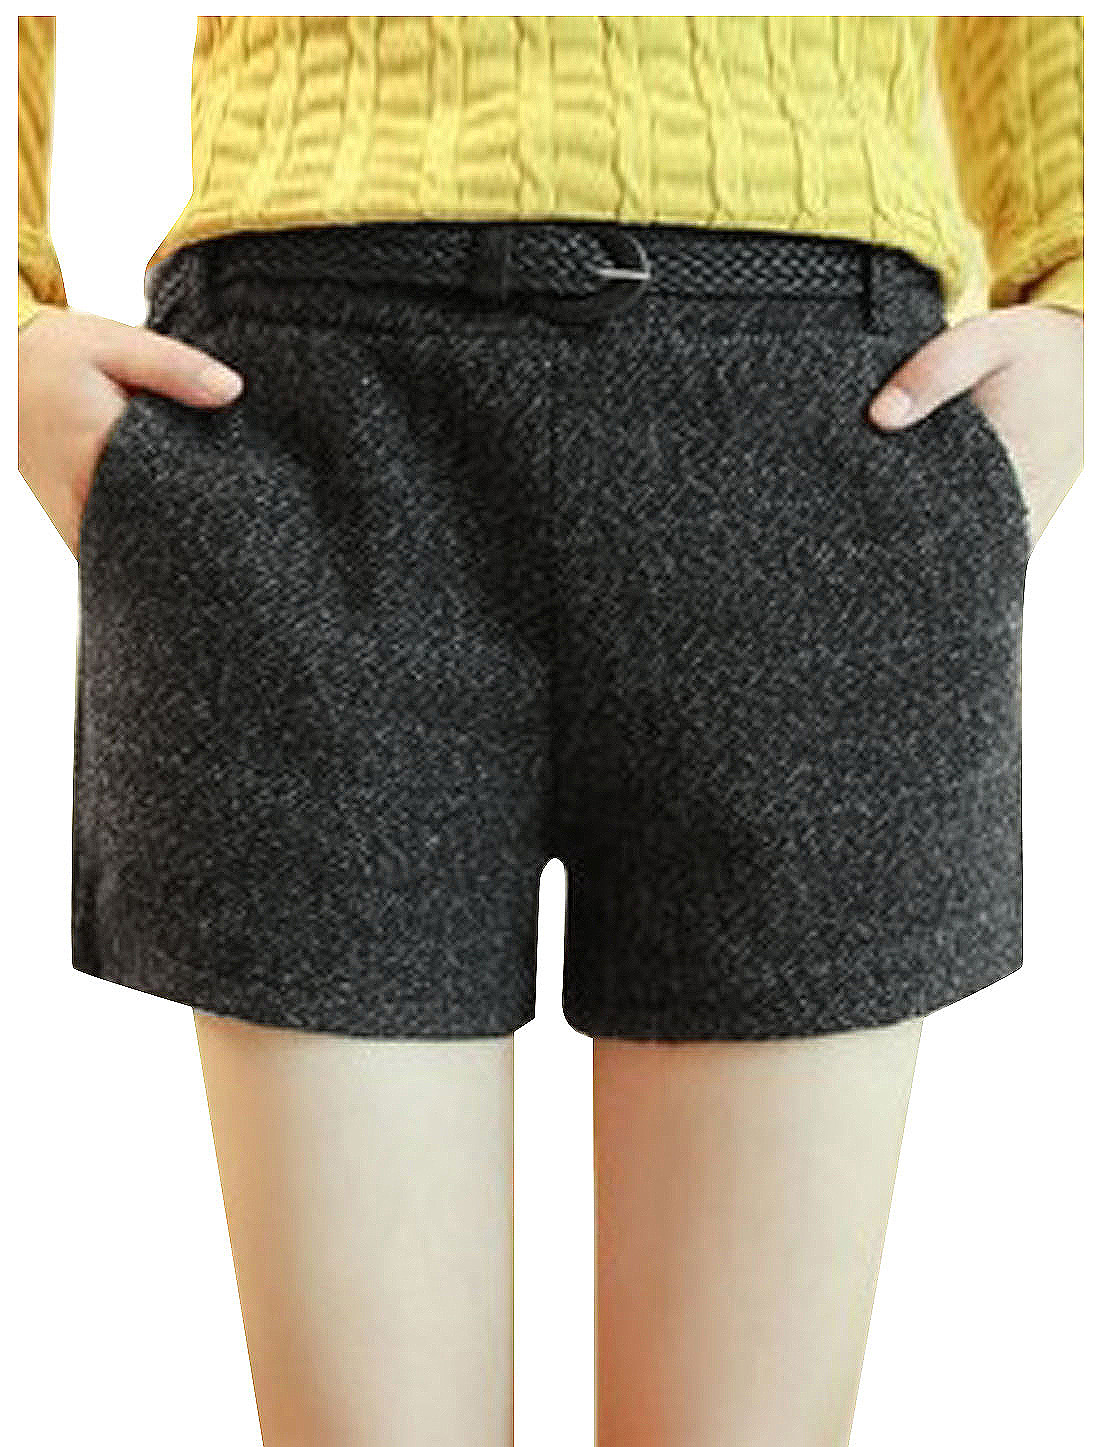 Women Elastic Waist Two Slant Pockets Casual Worsted Shorts w Belt Black XS